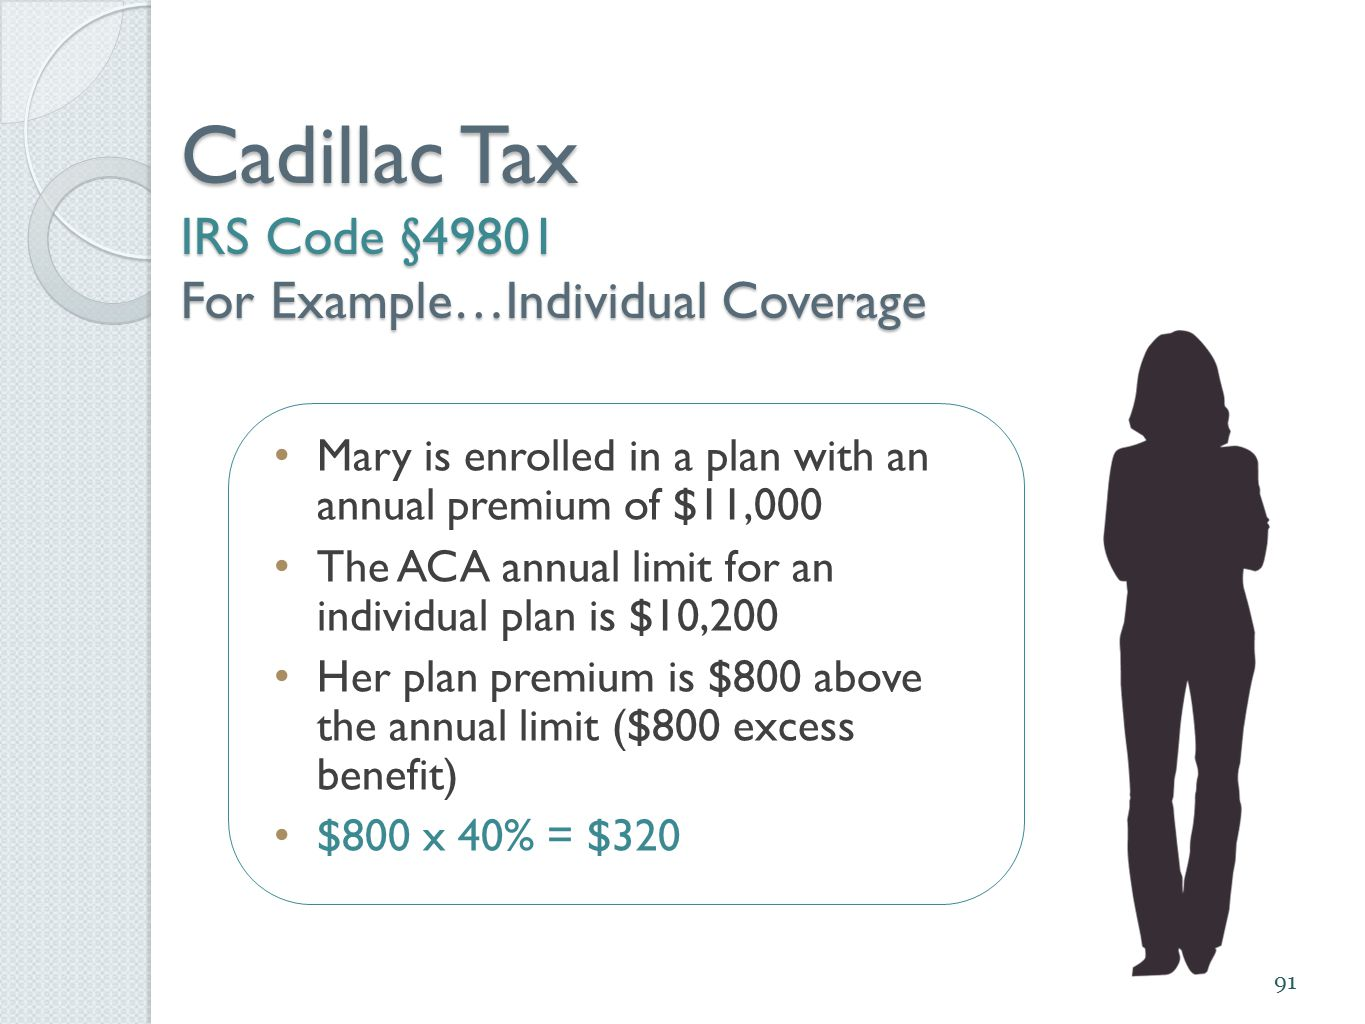 Cadillac Tax IRS Code §49801 For Example…Individual Coverage 91 Mary is enrolled in a plan with an annual premium of $11,000 The ACA annual limit for an individual plan is $10,200 Her plan premium is $800 above the annual limit ($800 excess benefit) $800 x 40% = $320